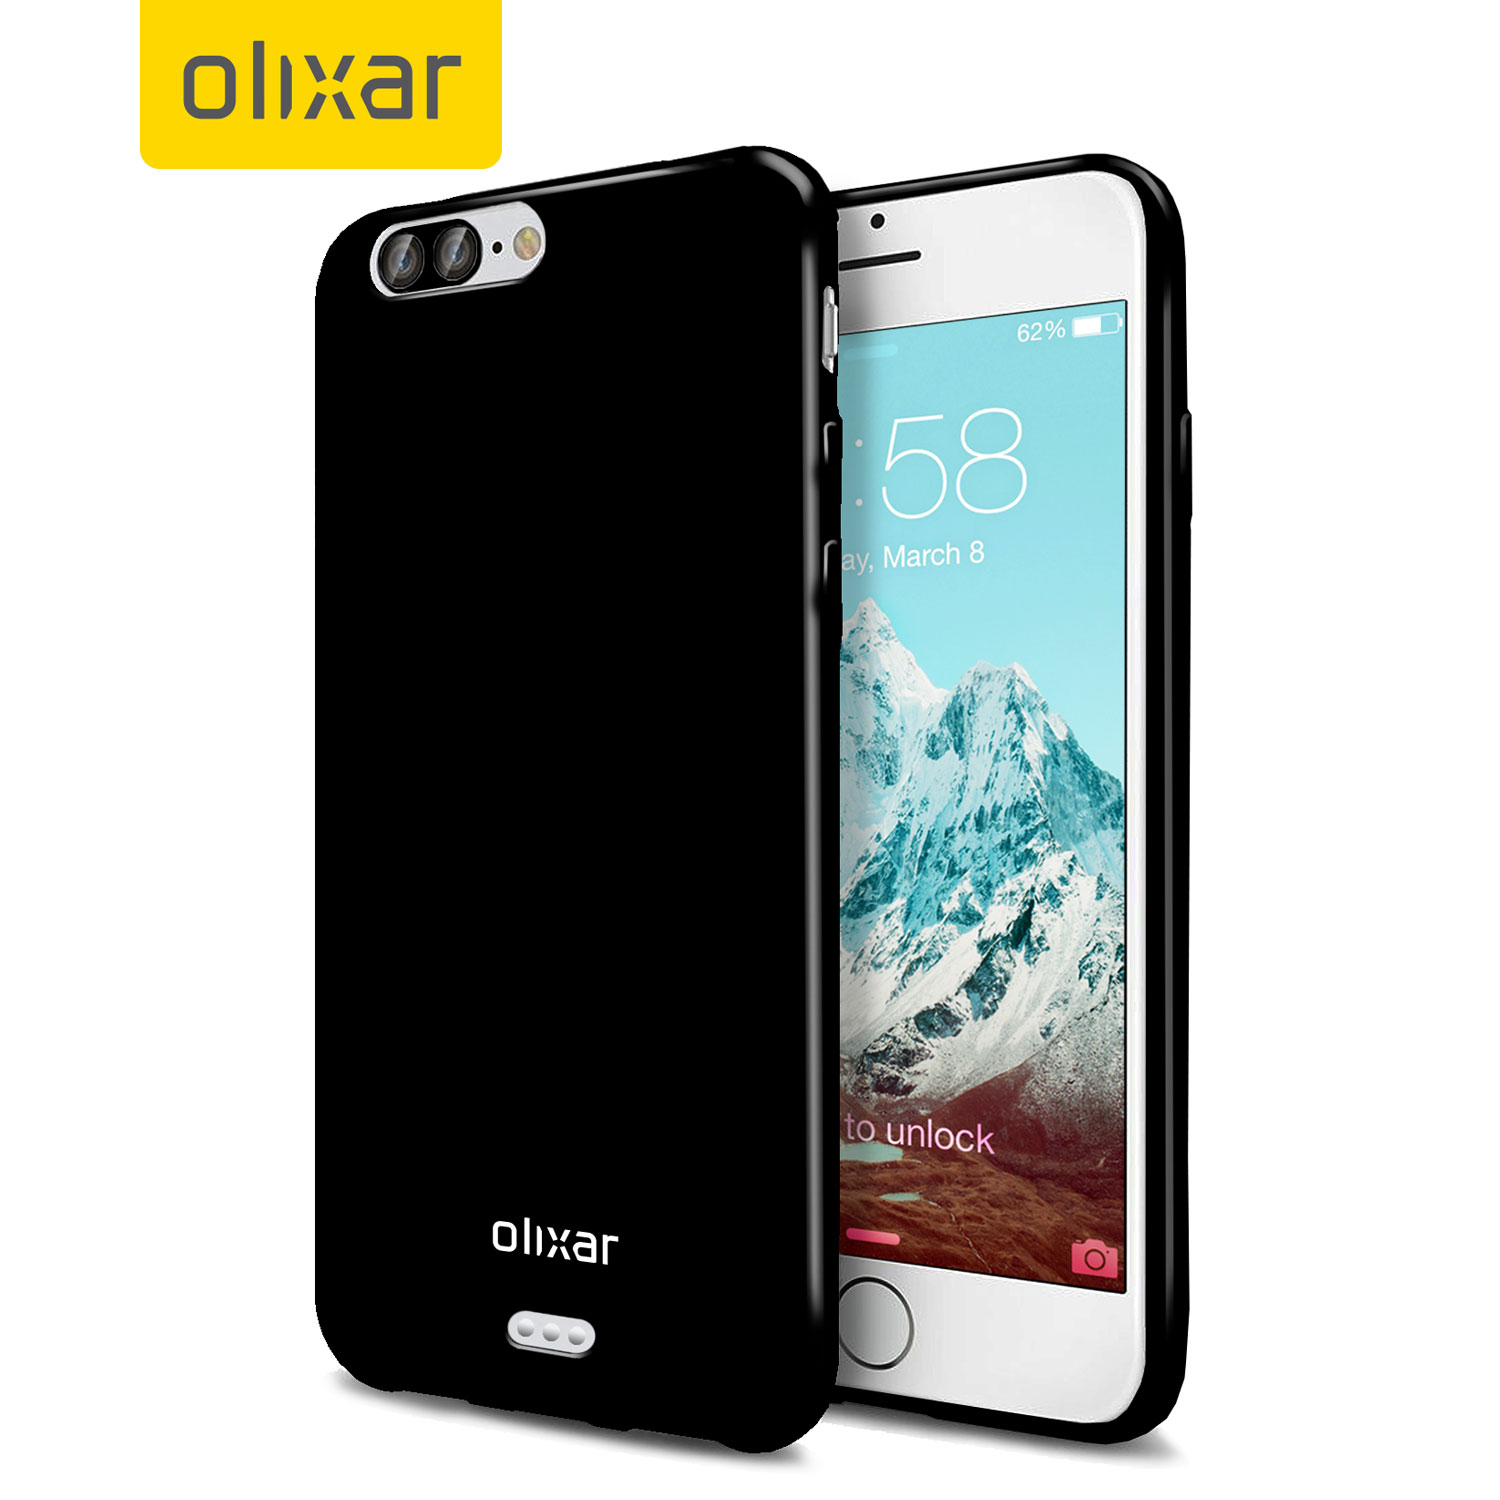 iPhone-7-and-7-Plus-case-images-by-Olixar (3)